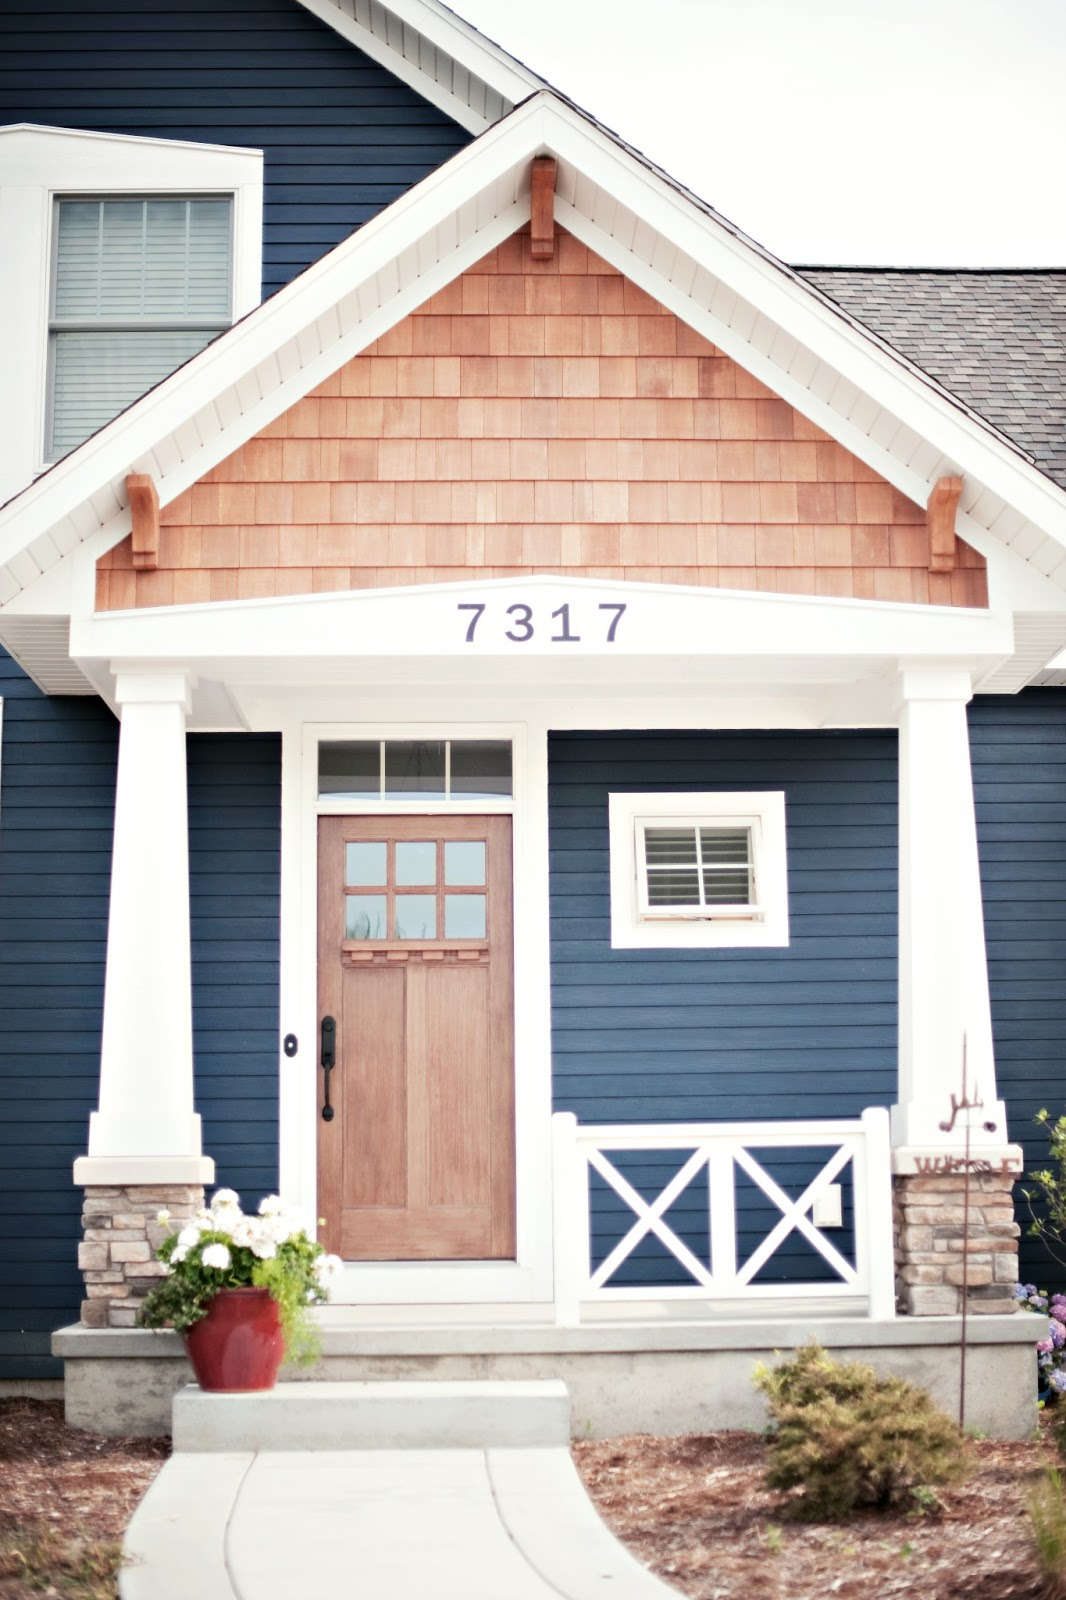 Lisa mende design best navy blue paint colors 8 of my favs Best paint color outside house